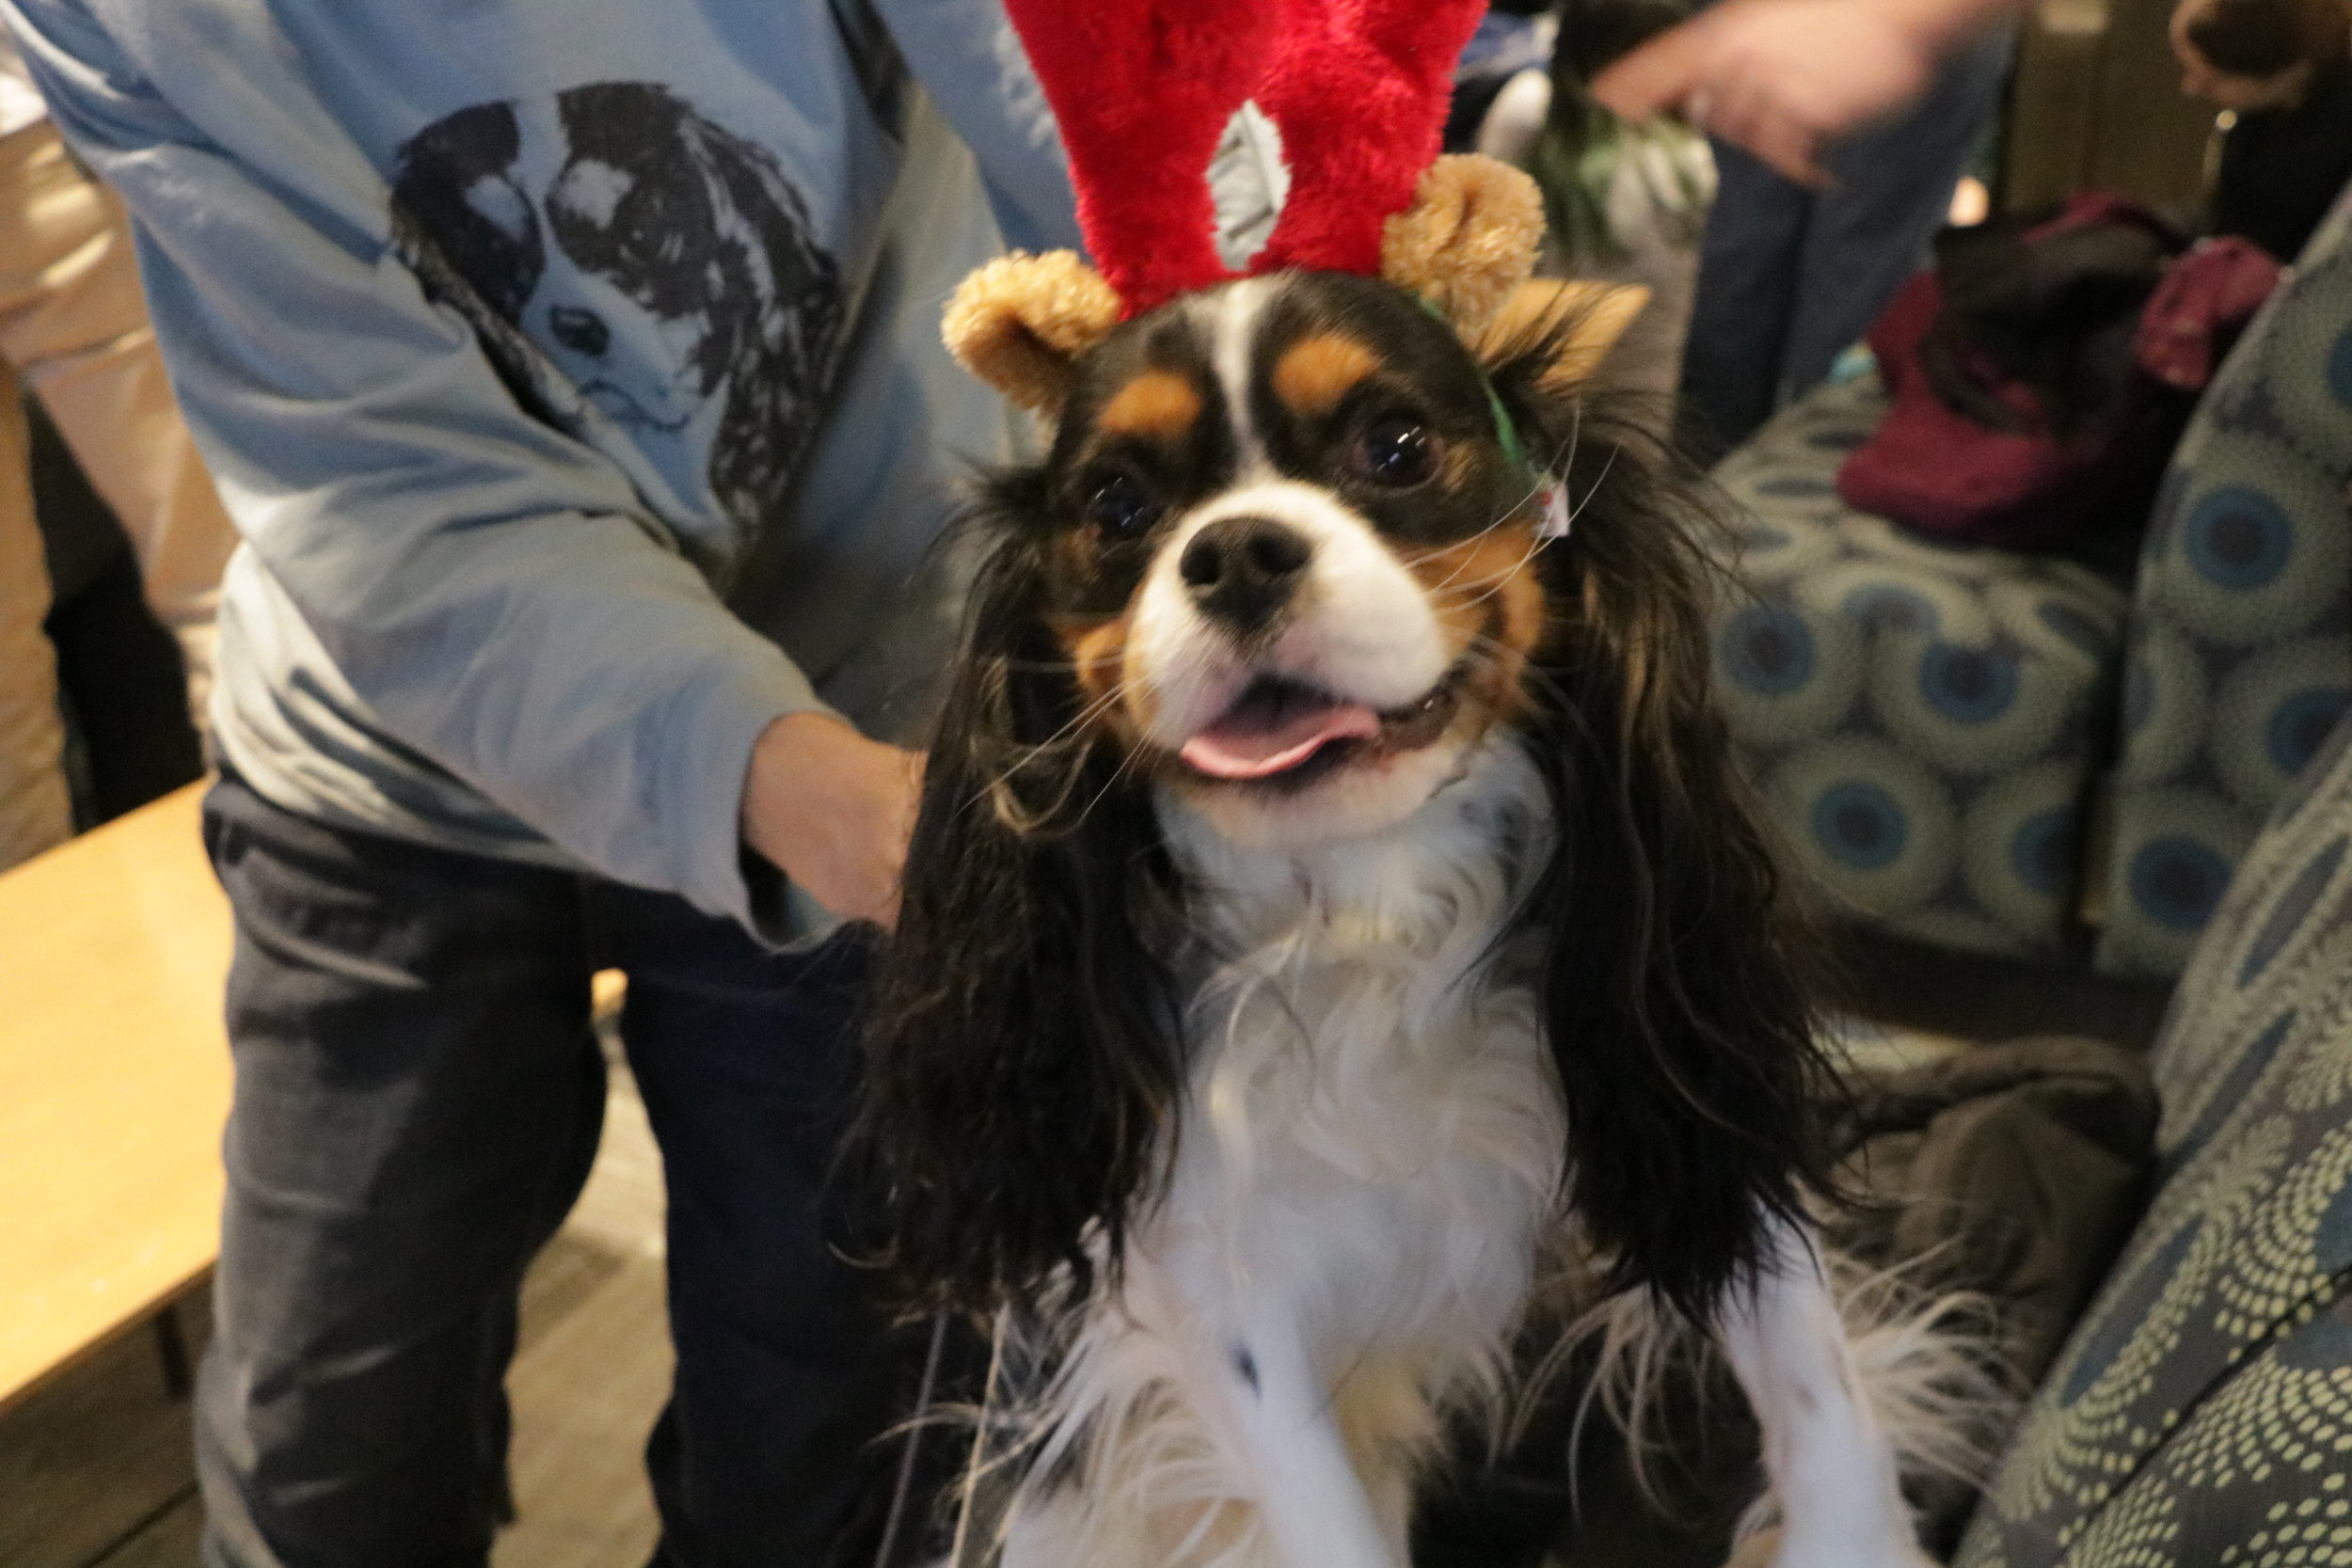 Energetic Charmer is donning reindeer antlers for the December PAWS event. Photo by Ren Friemann